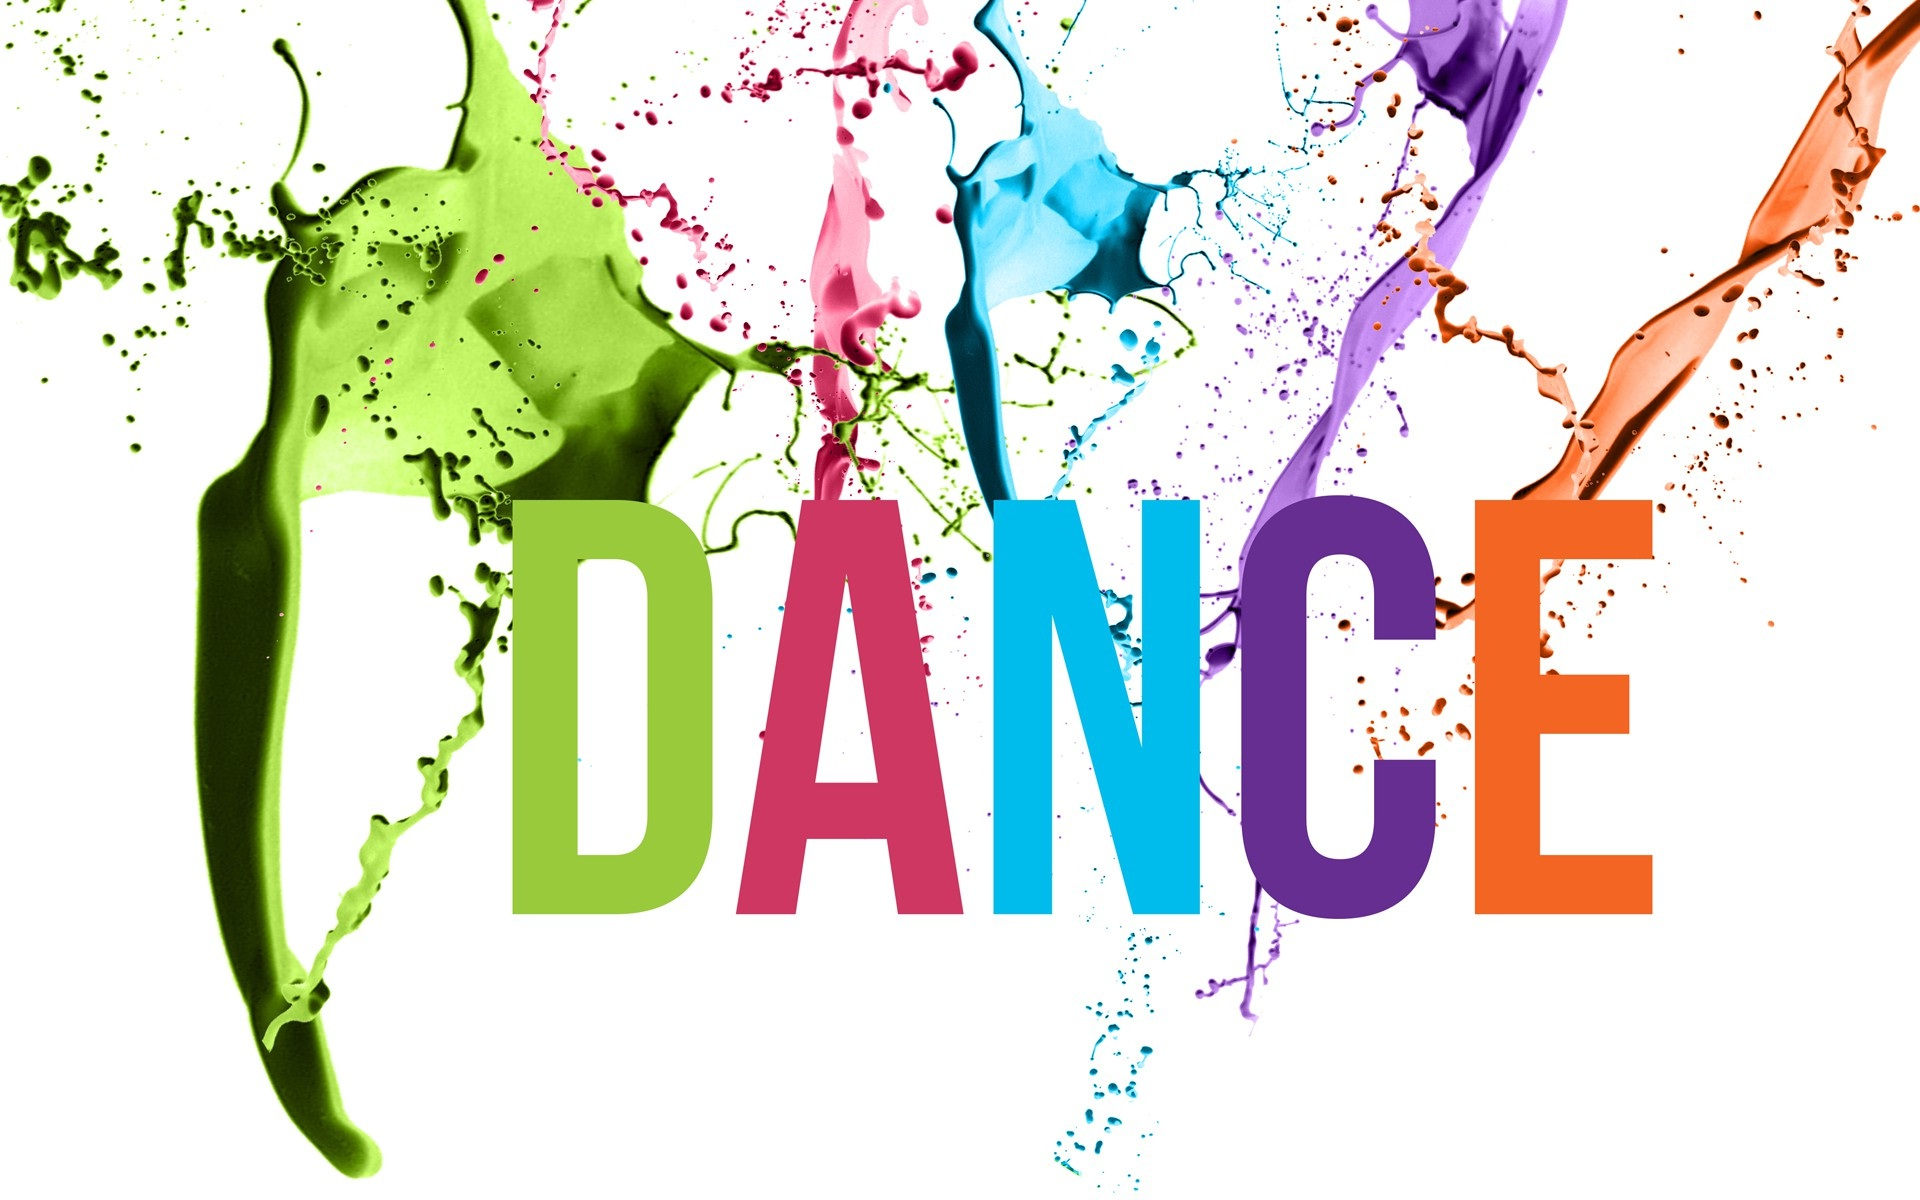 So You Think You Can Dance 2019 banner image